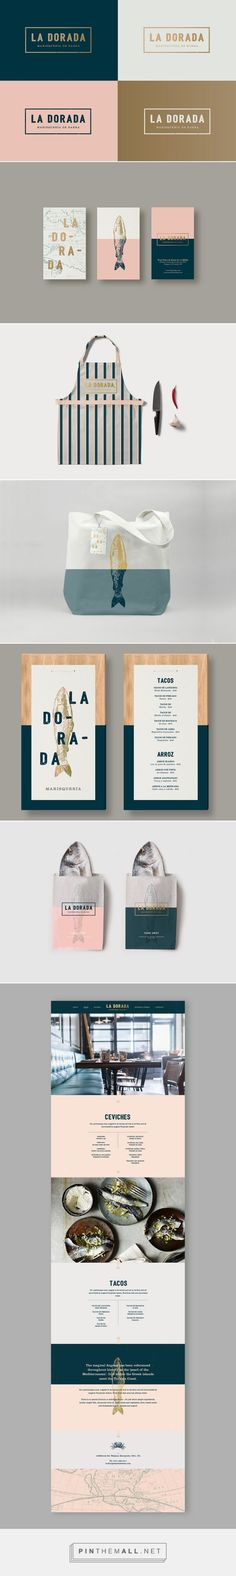 Food Inspiration - La Dorada packaging branding on Behance curated by Packaging Diva PD. Who's up for fish for lunch : ) PD. - a grouped images picture - business branding Branding And Packaging, Food Branding, Restaurant Branding, Business Branding, Packaging Design, Restaurant Restaurant, Identity Branding, Corporate Branding, Logo Food